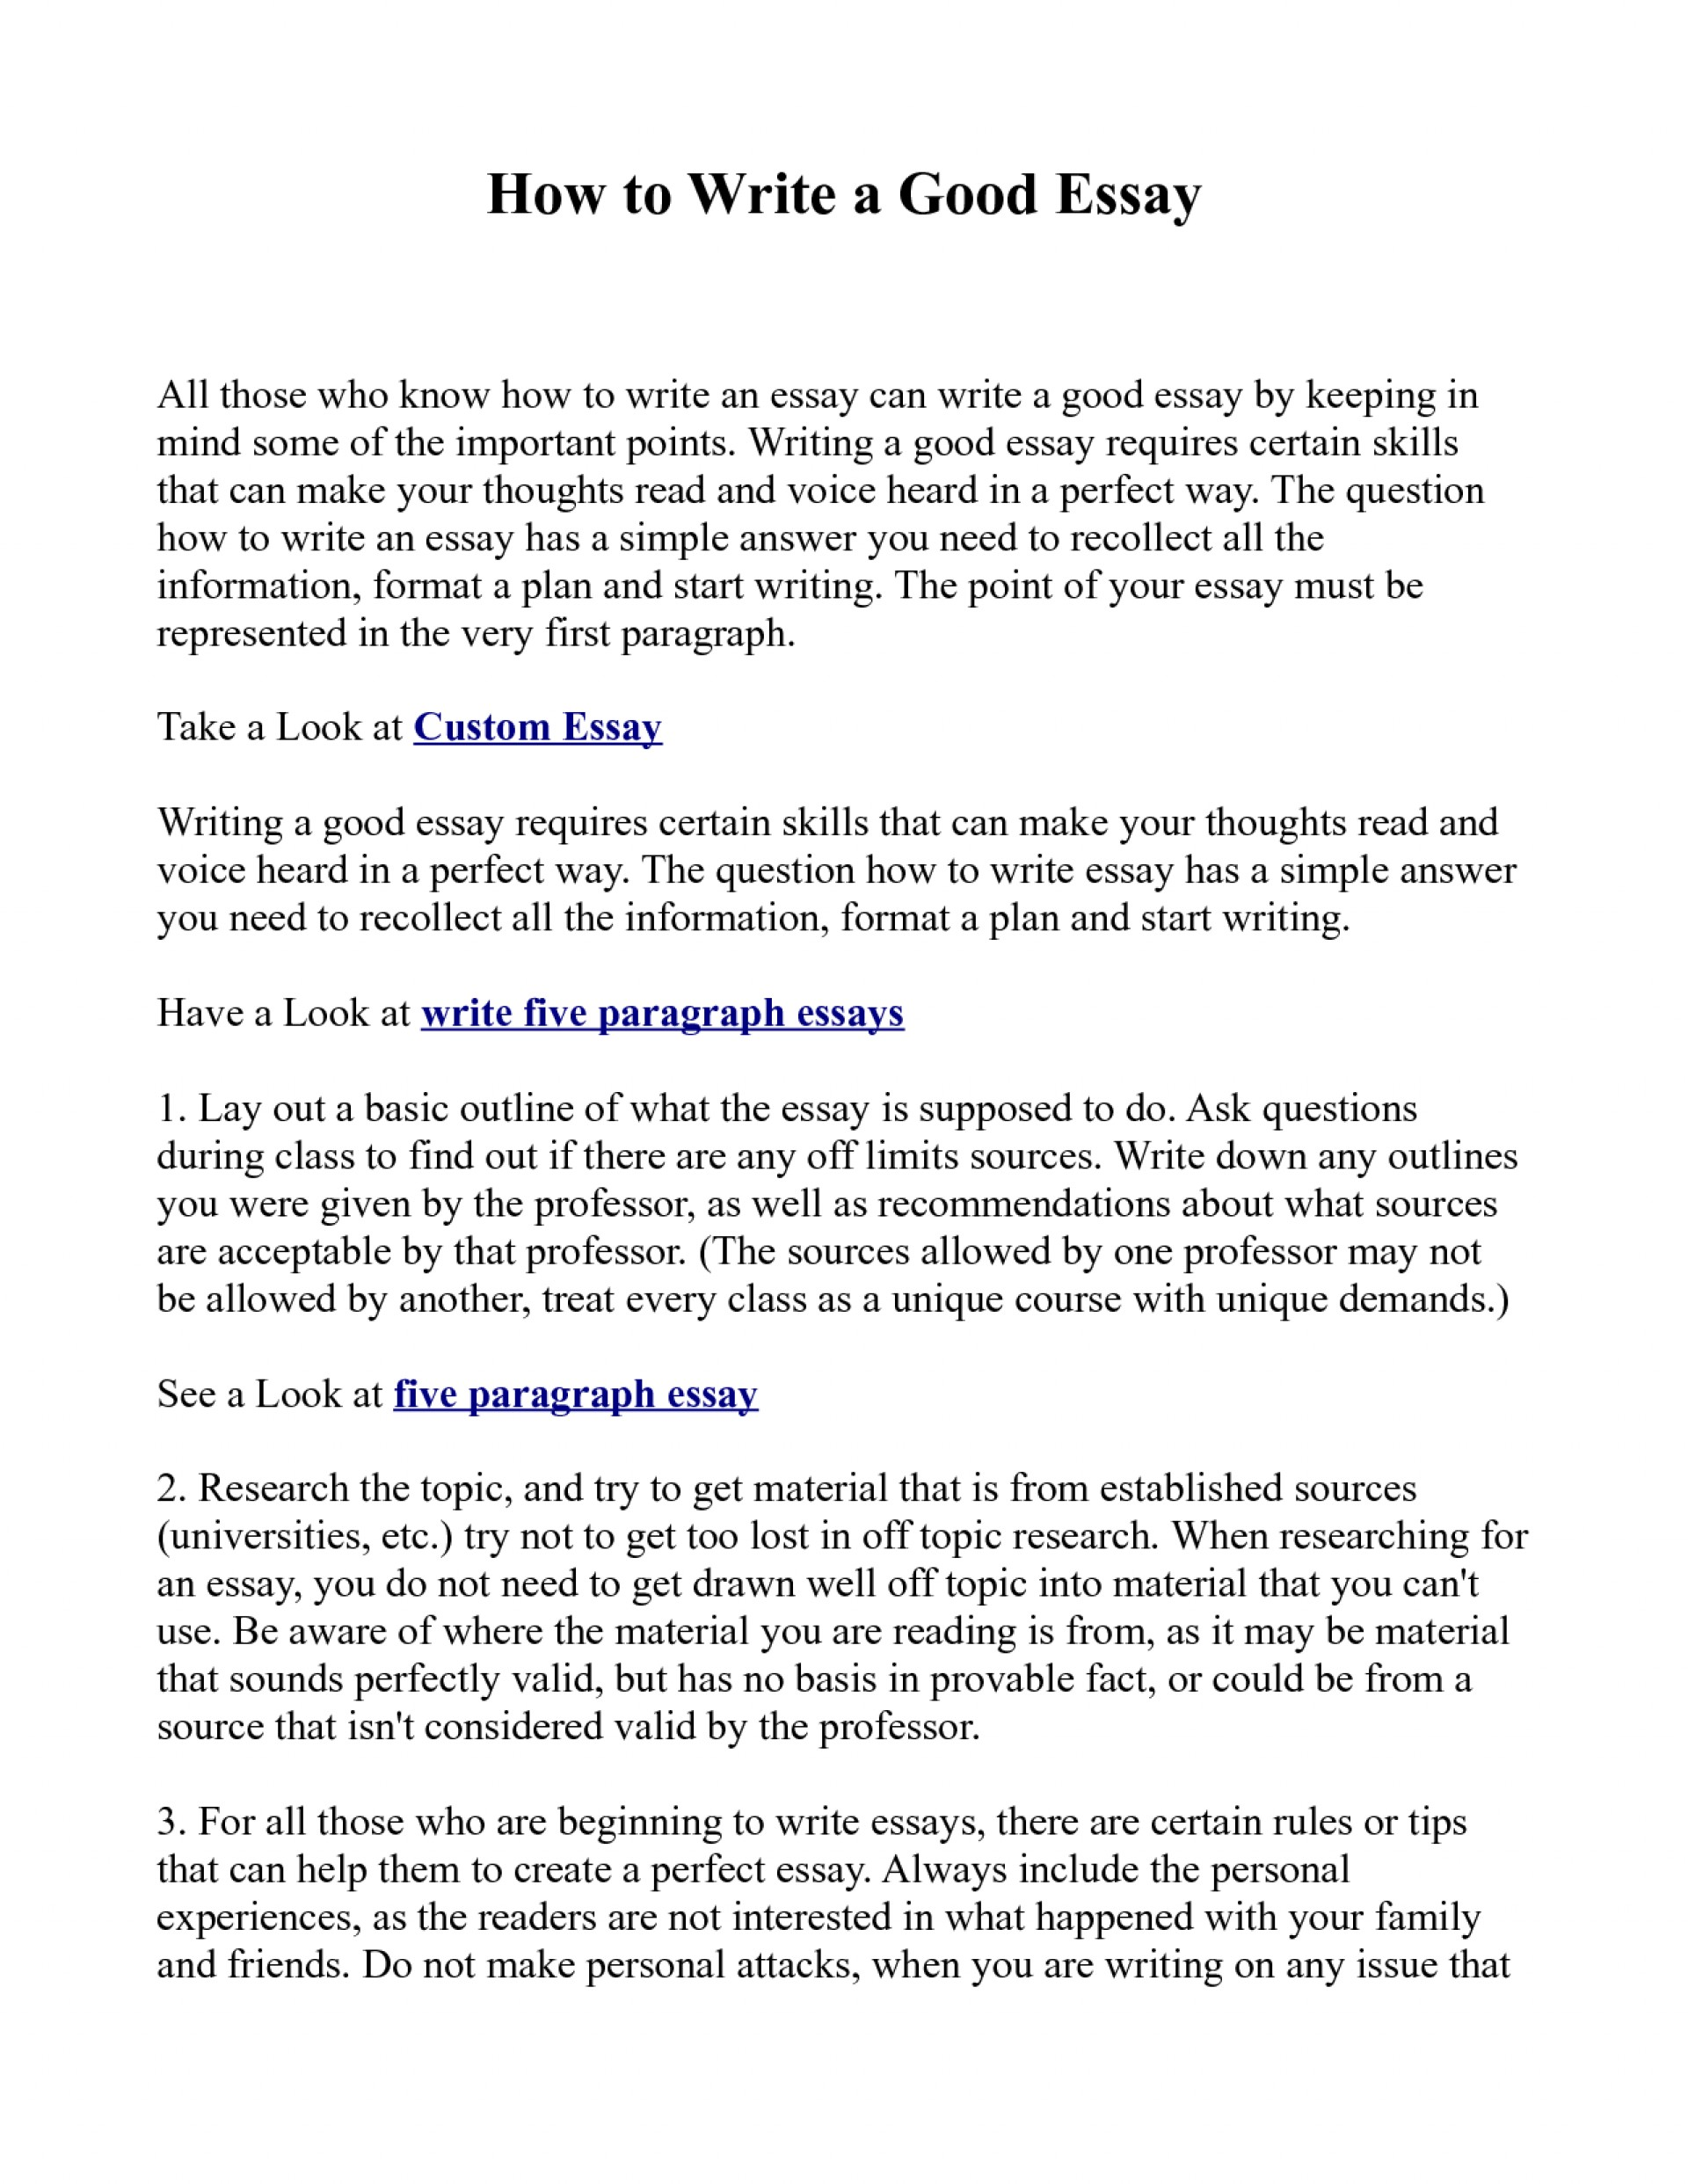 010 How To Write Essay Ex1id5s6cl Awful Ab An In 3 Hours Introduction Body And Conclusion 2 1920